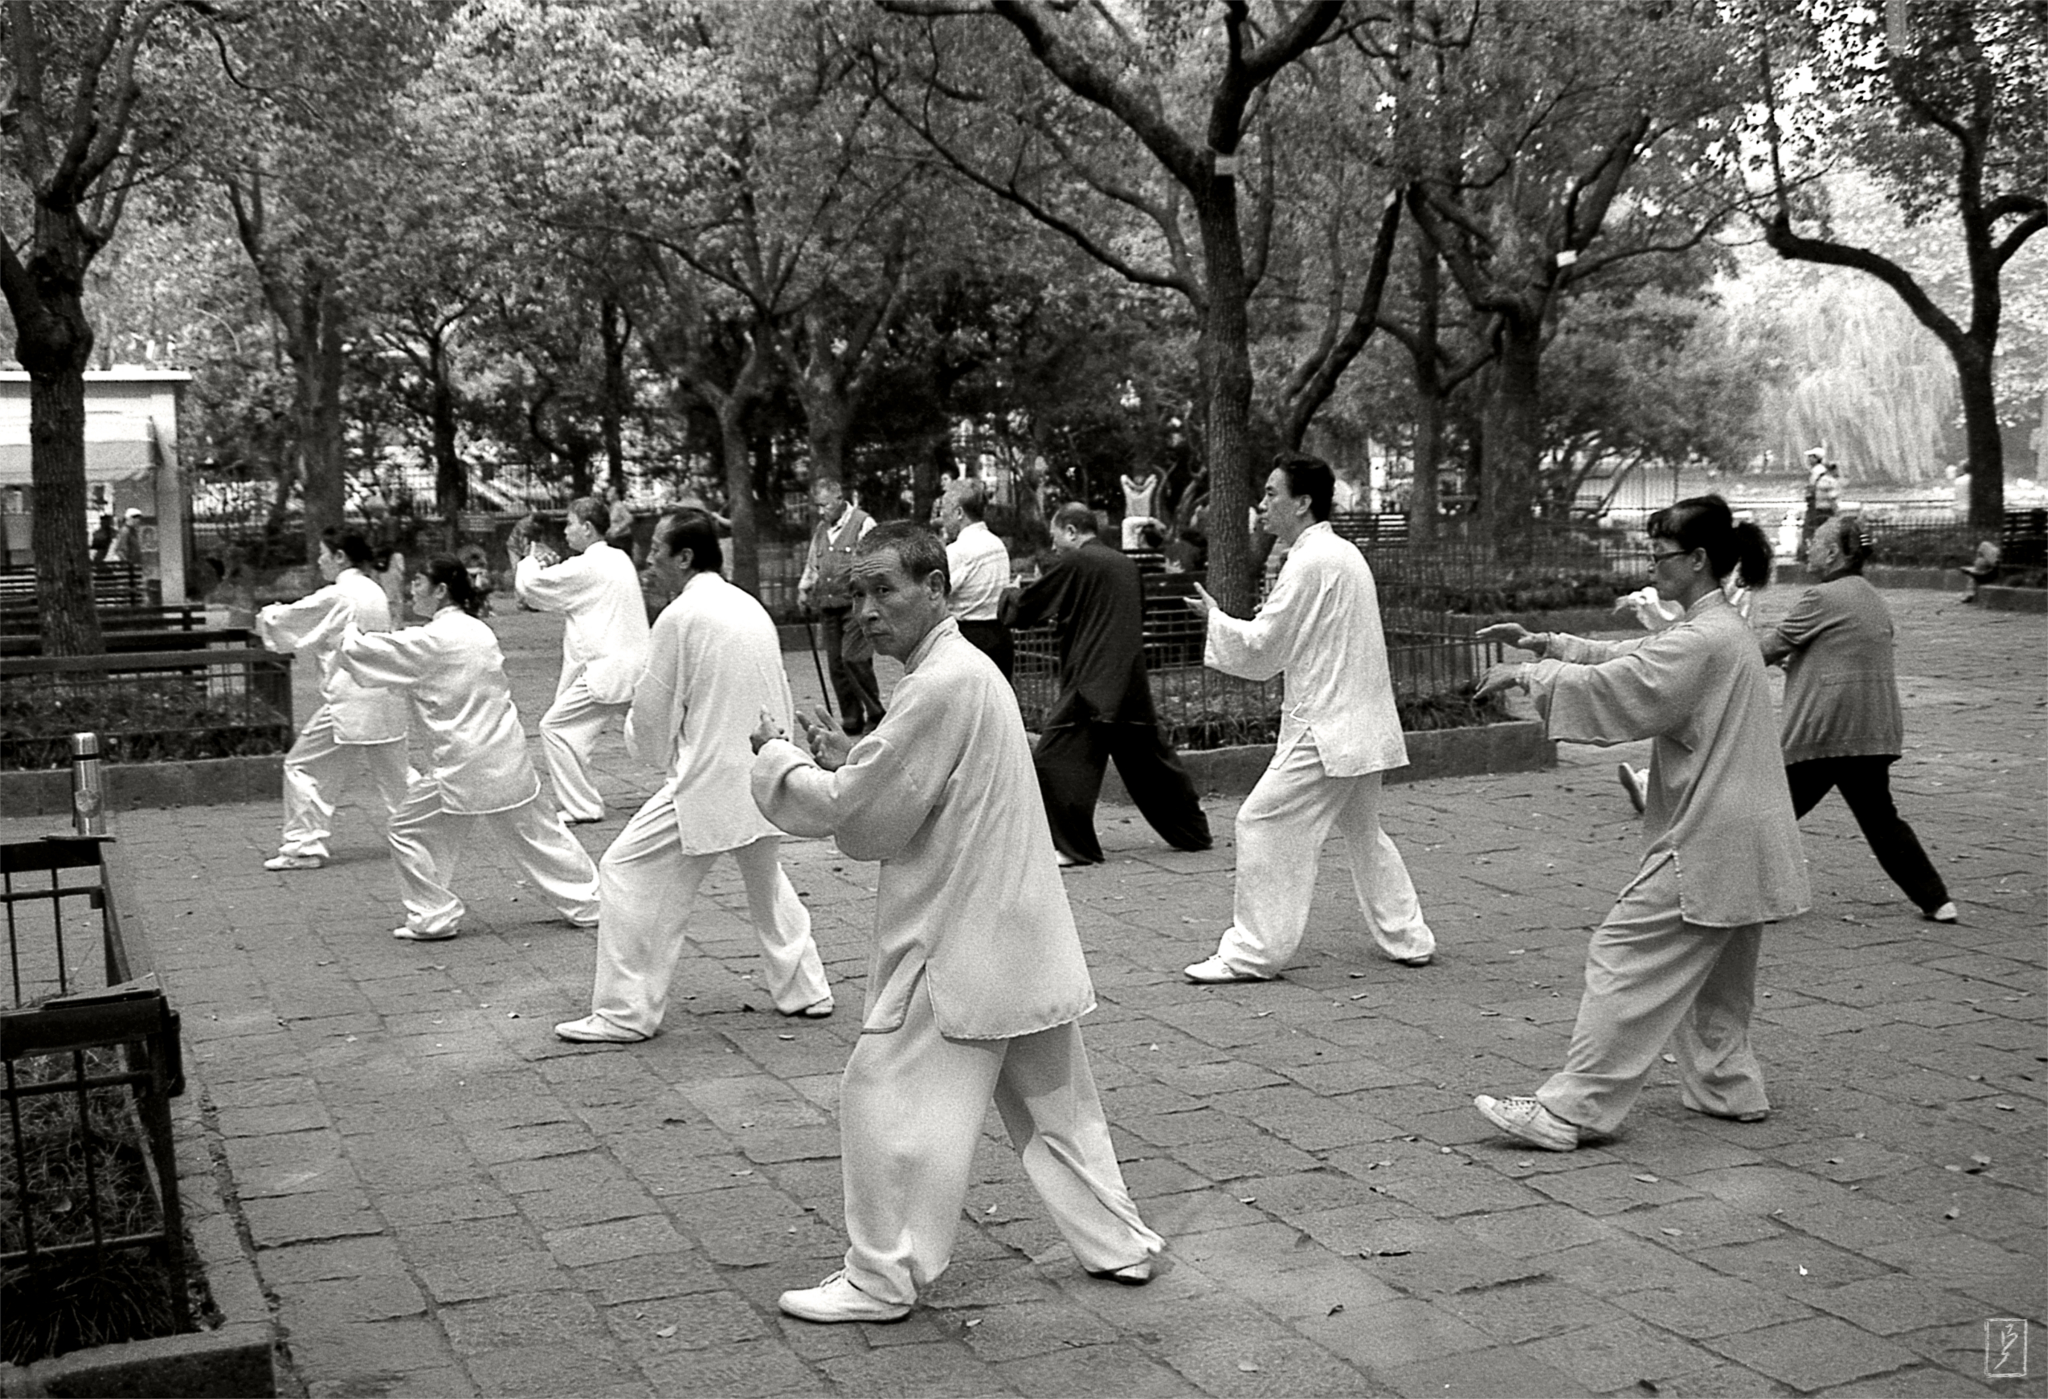 Lu Xun park (鲁迅公园): Taiji group practice.